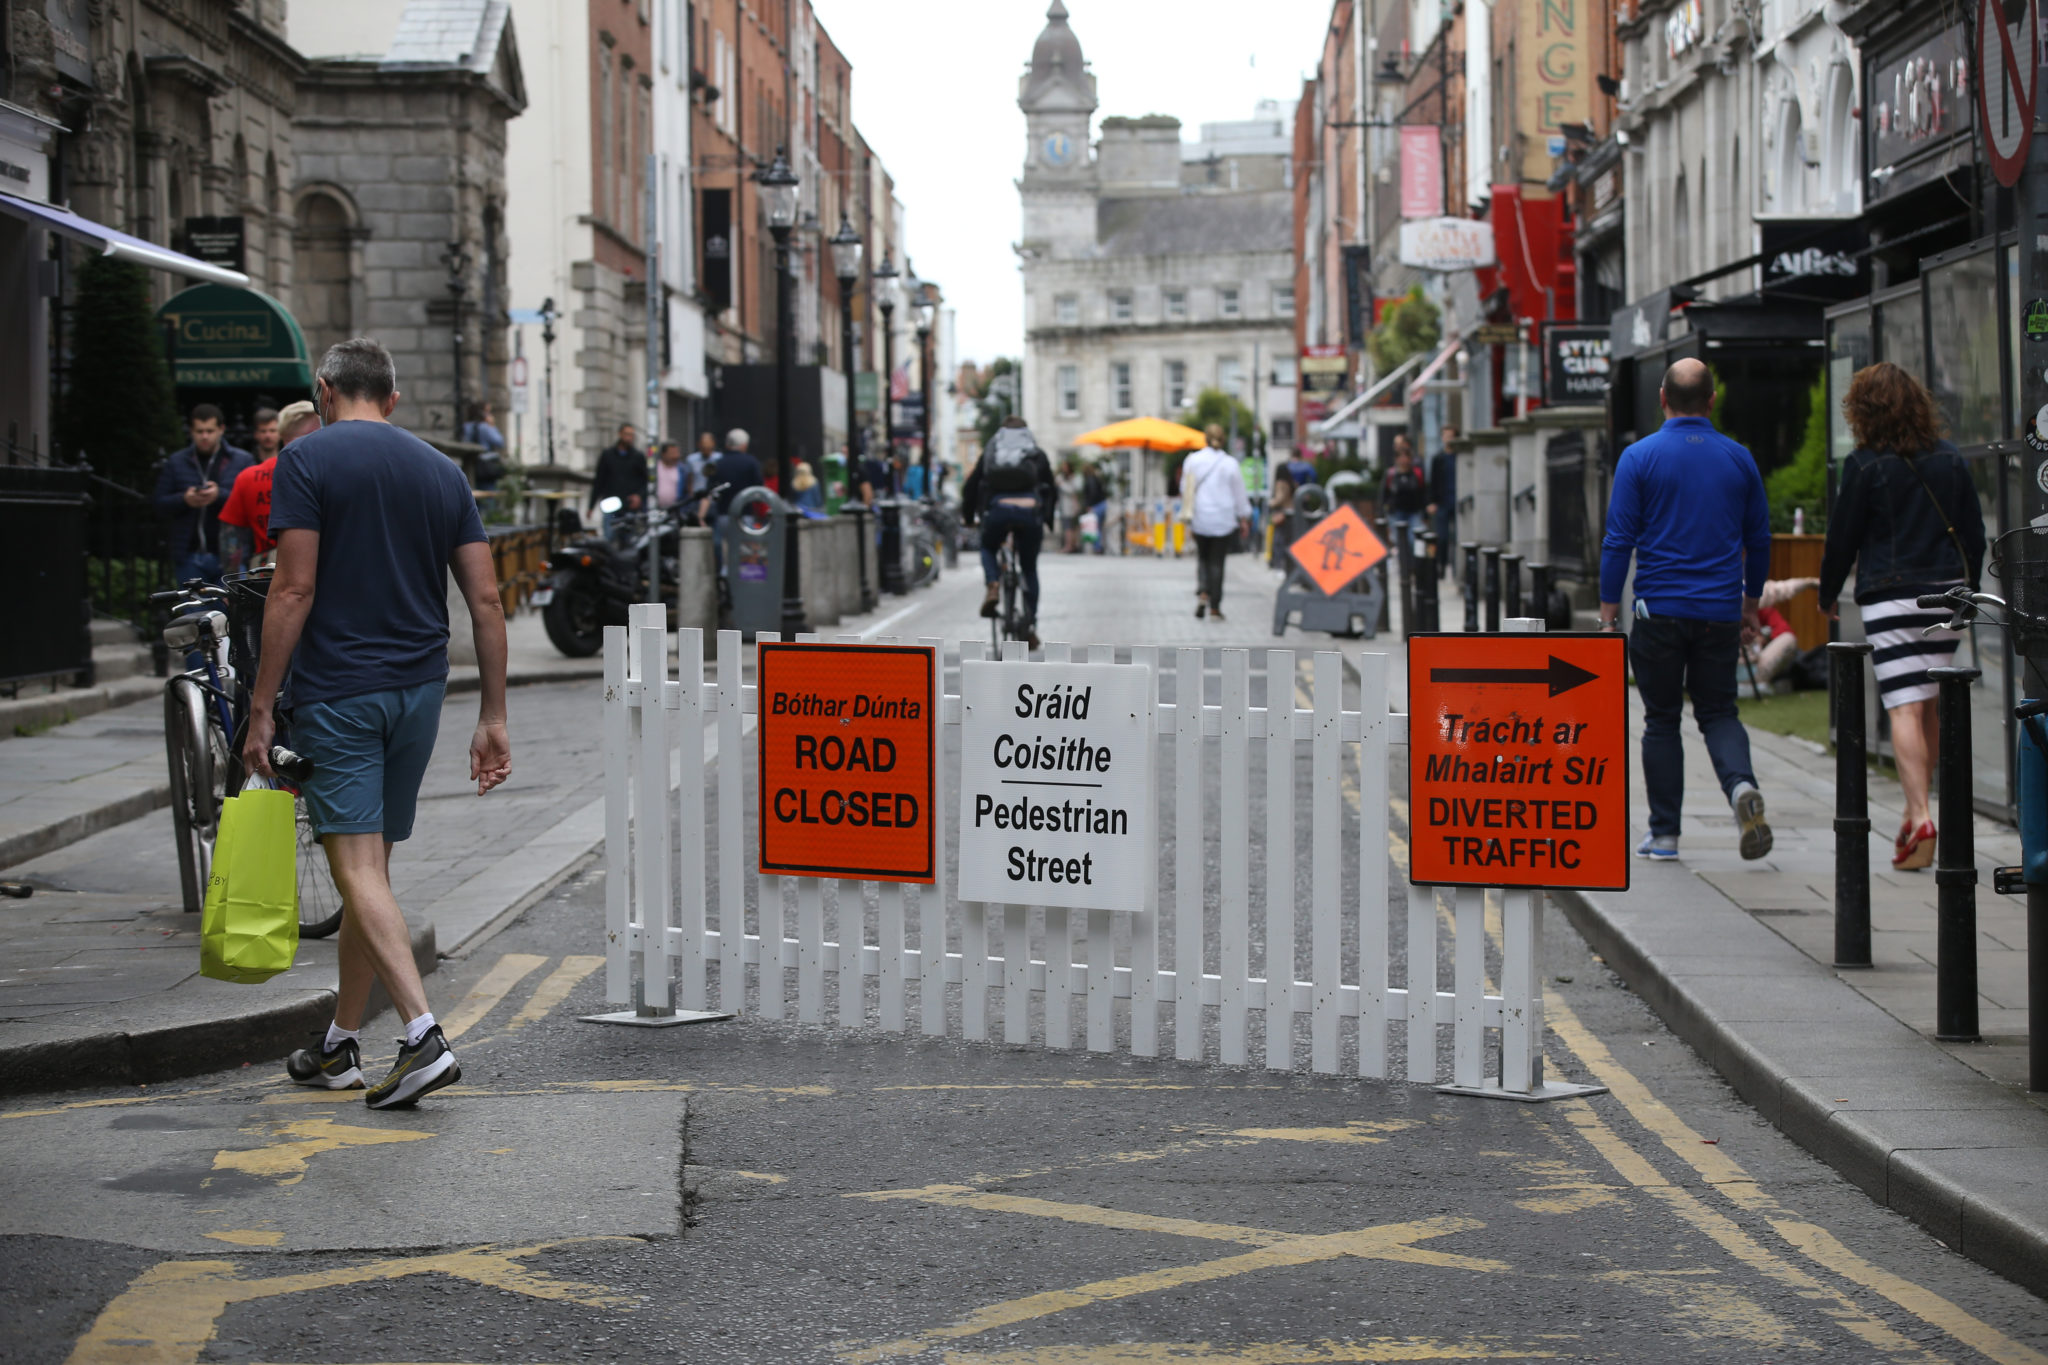 Dublin's South William Street is seen with pedestrianisation signs in August 2020.